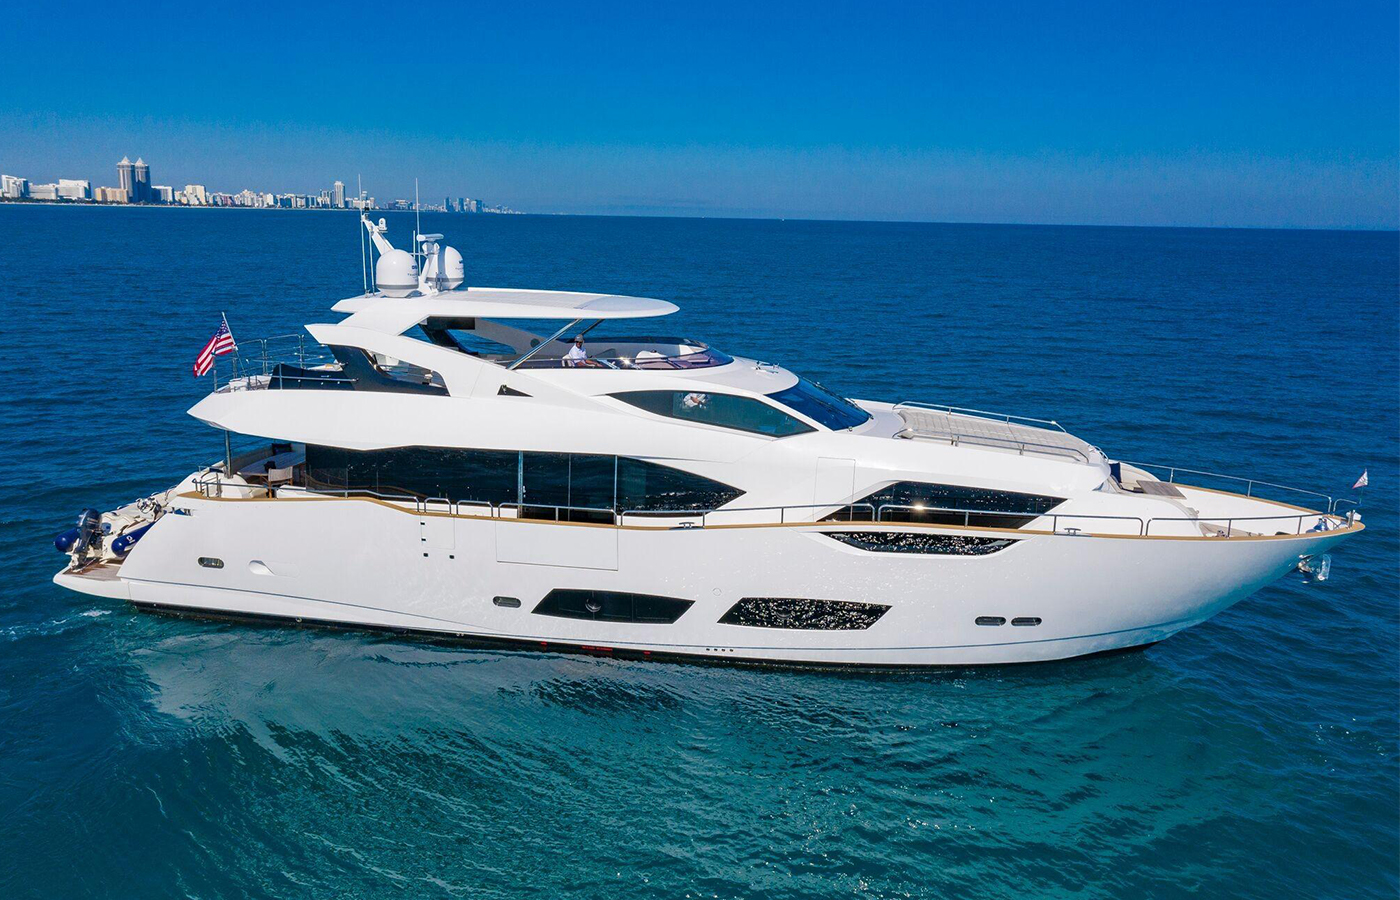 95 Sunseeker Motor Yacht Sold By Peter Quintal